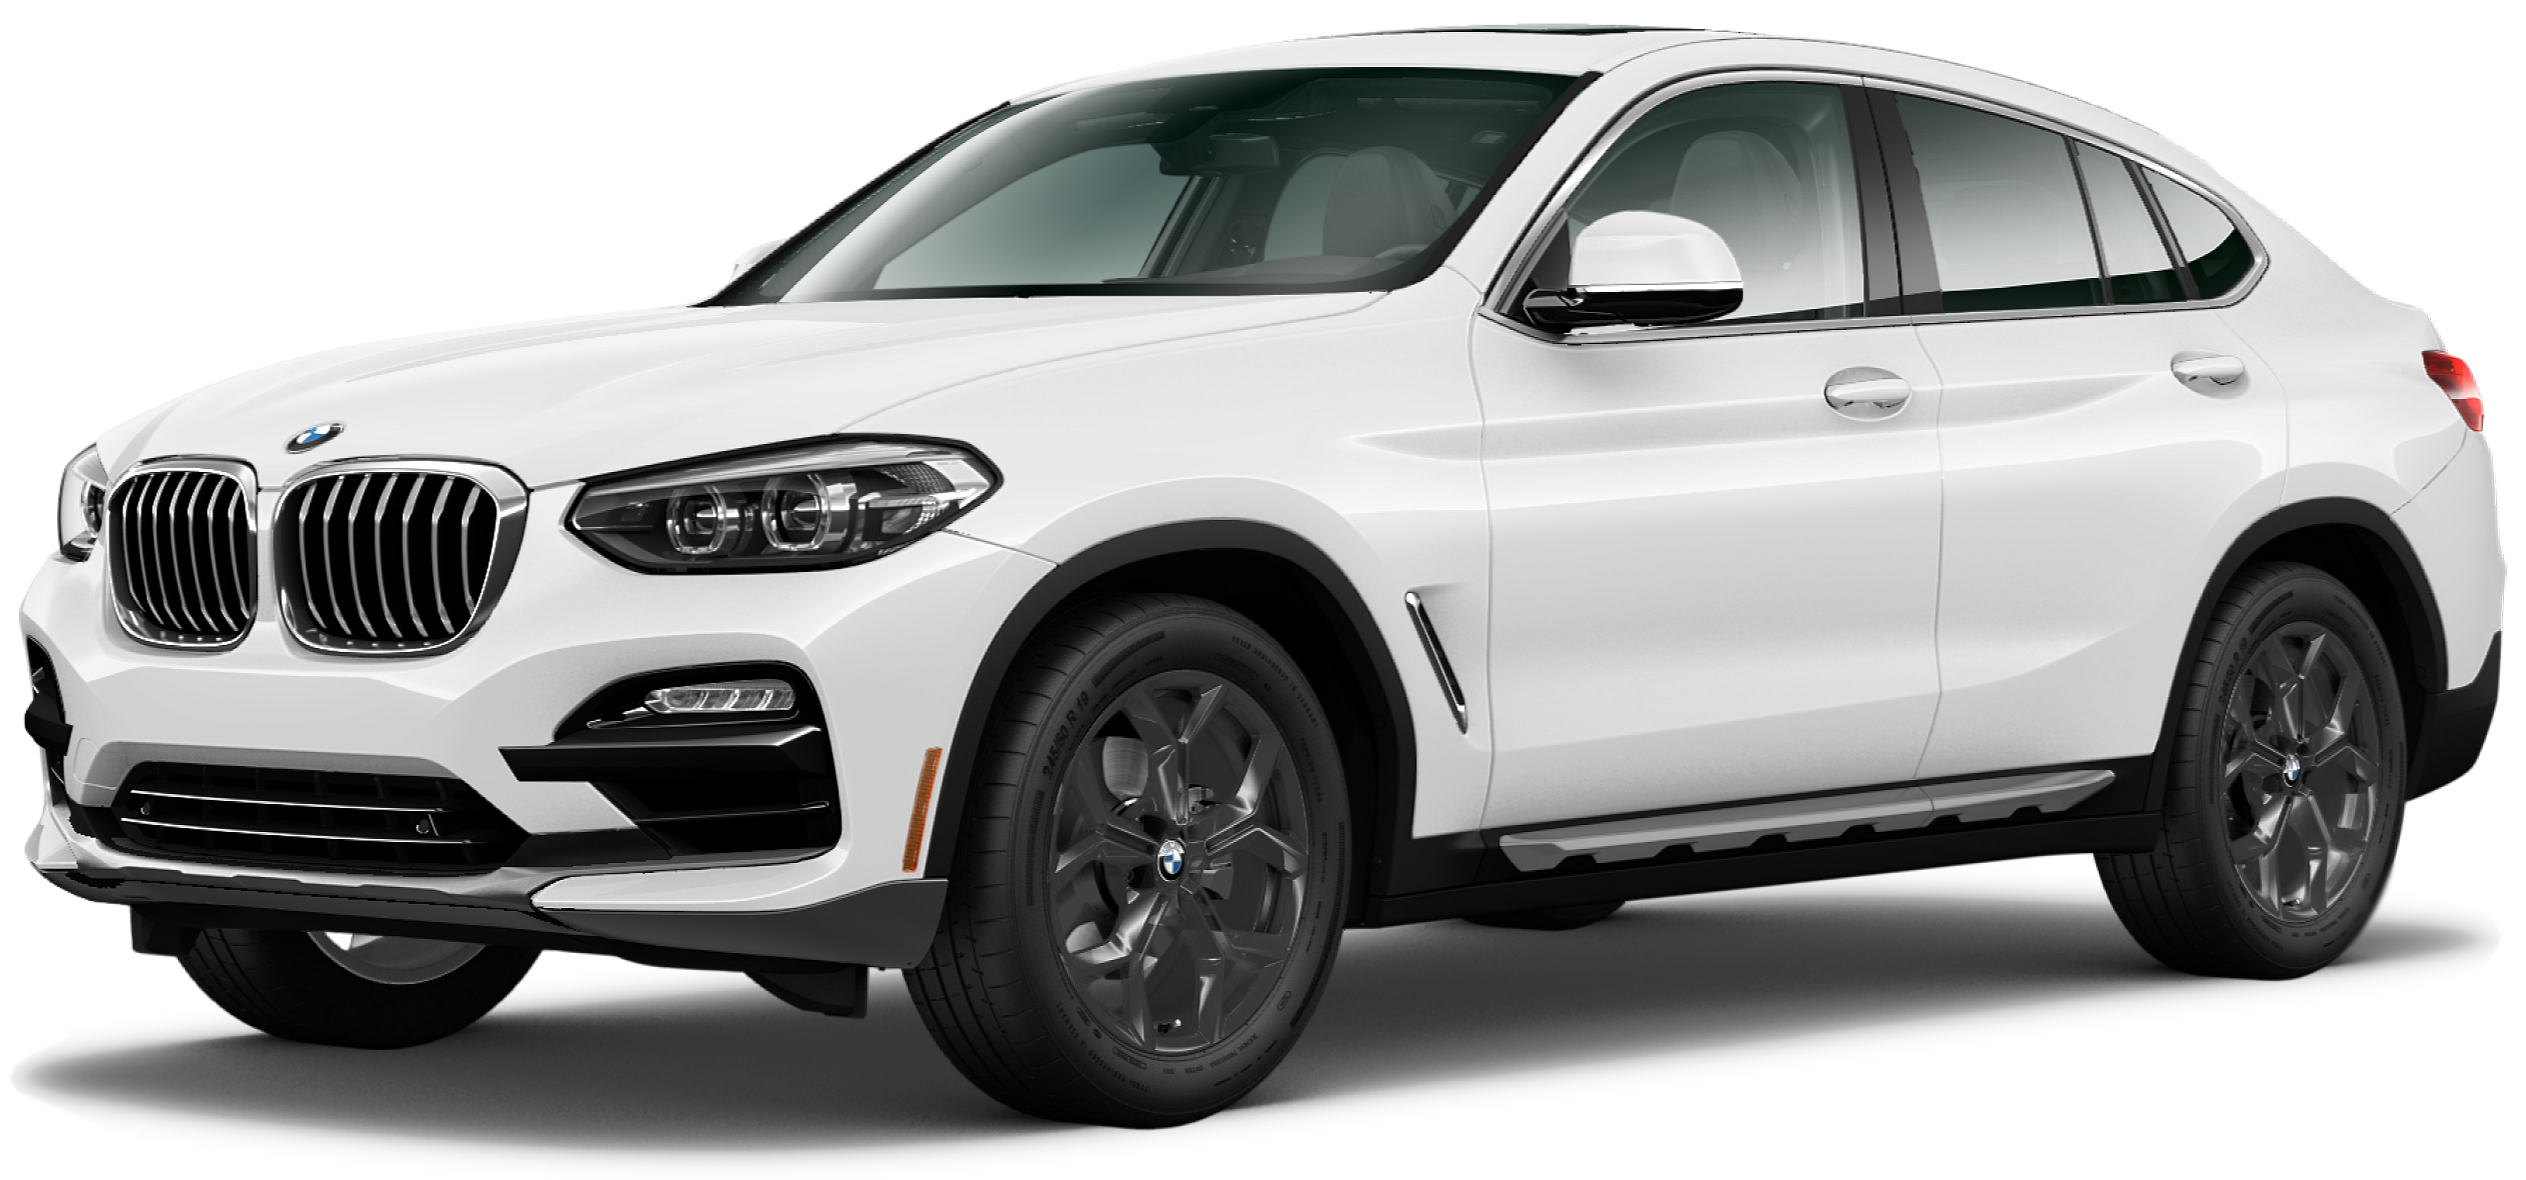 2021 BMW X4 Incentives, Specials & Offers in Northfield IL